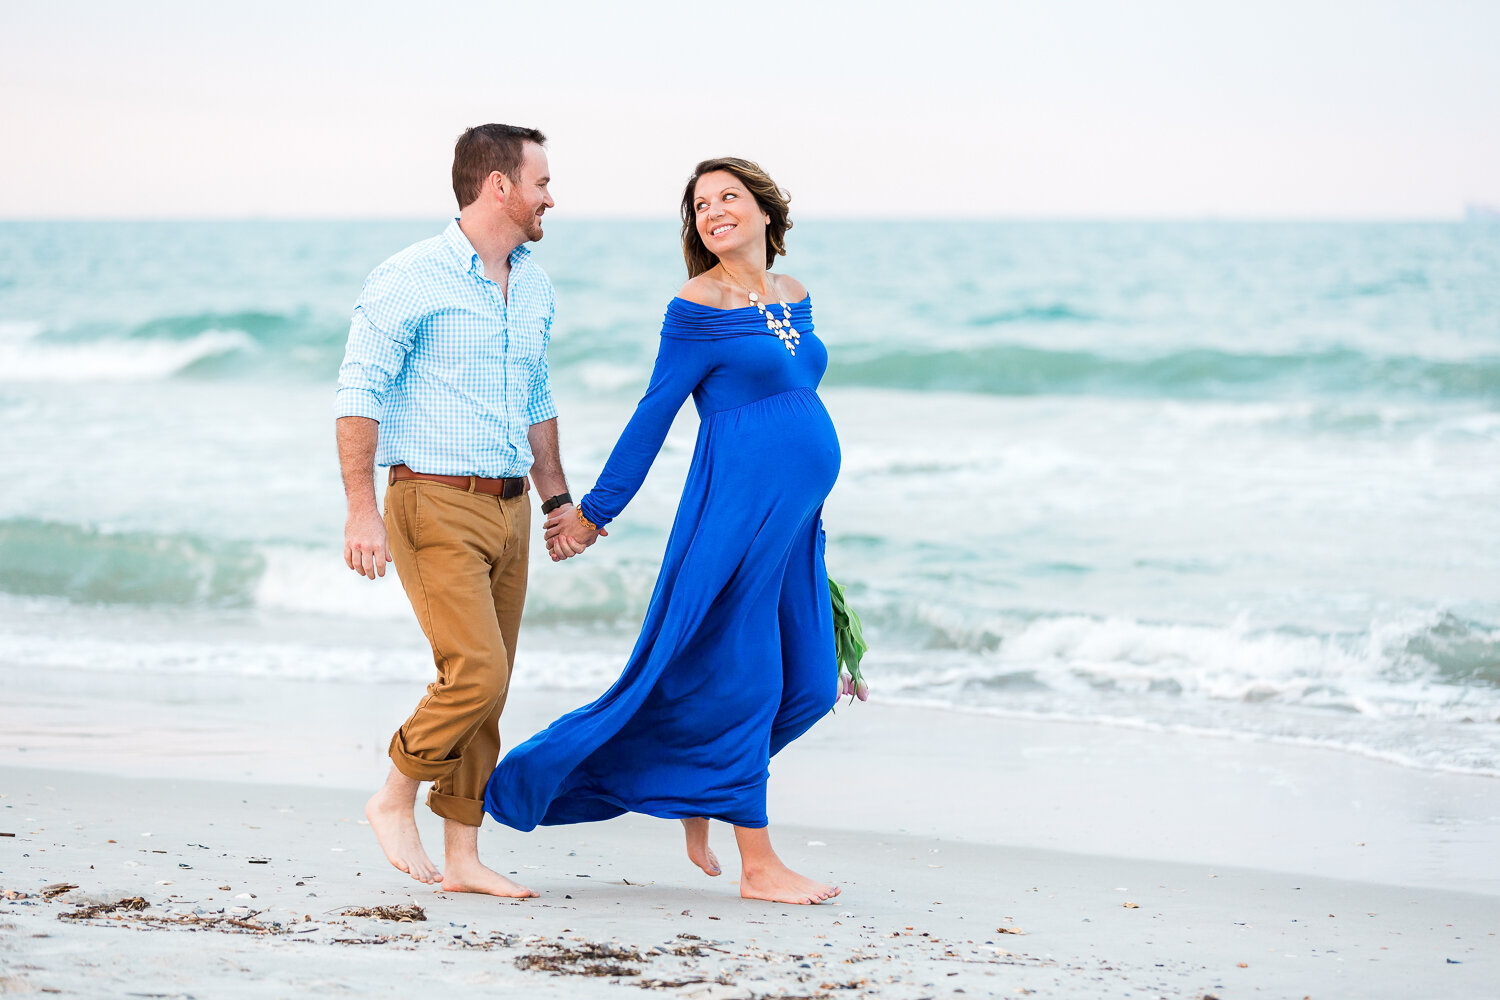 walking at the beach during the sunset maternity session in Hanna park